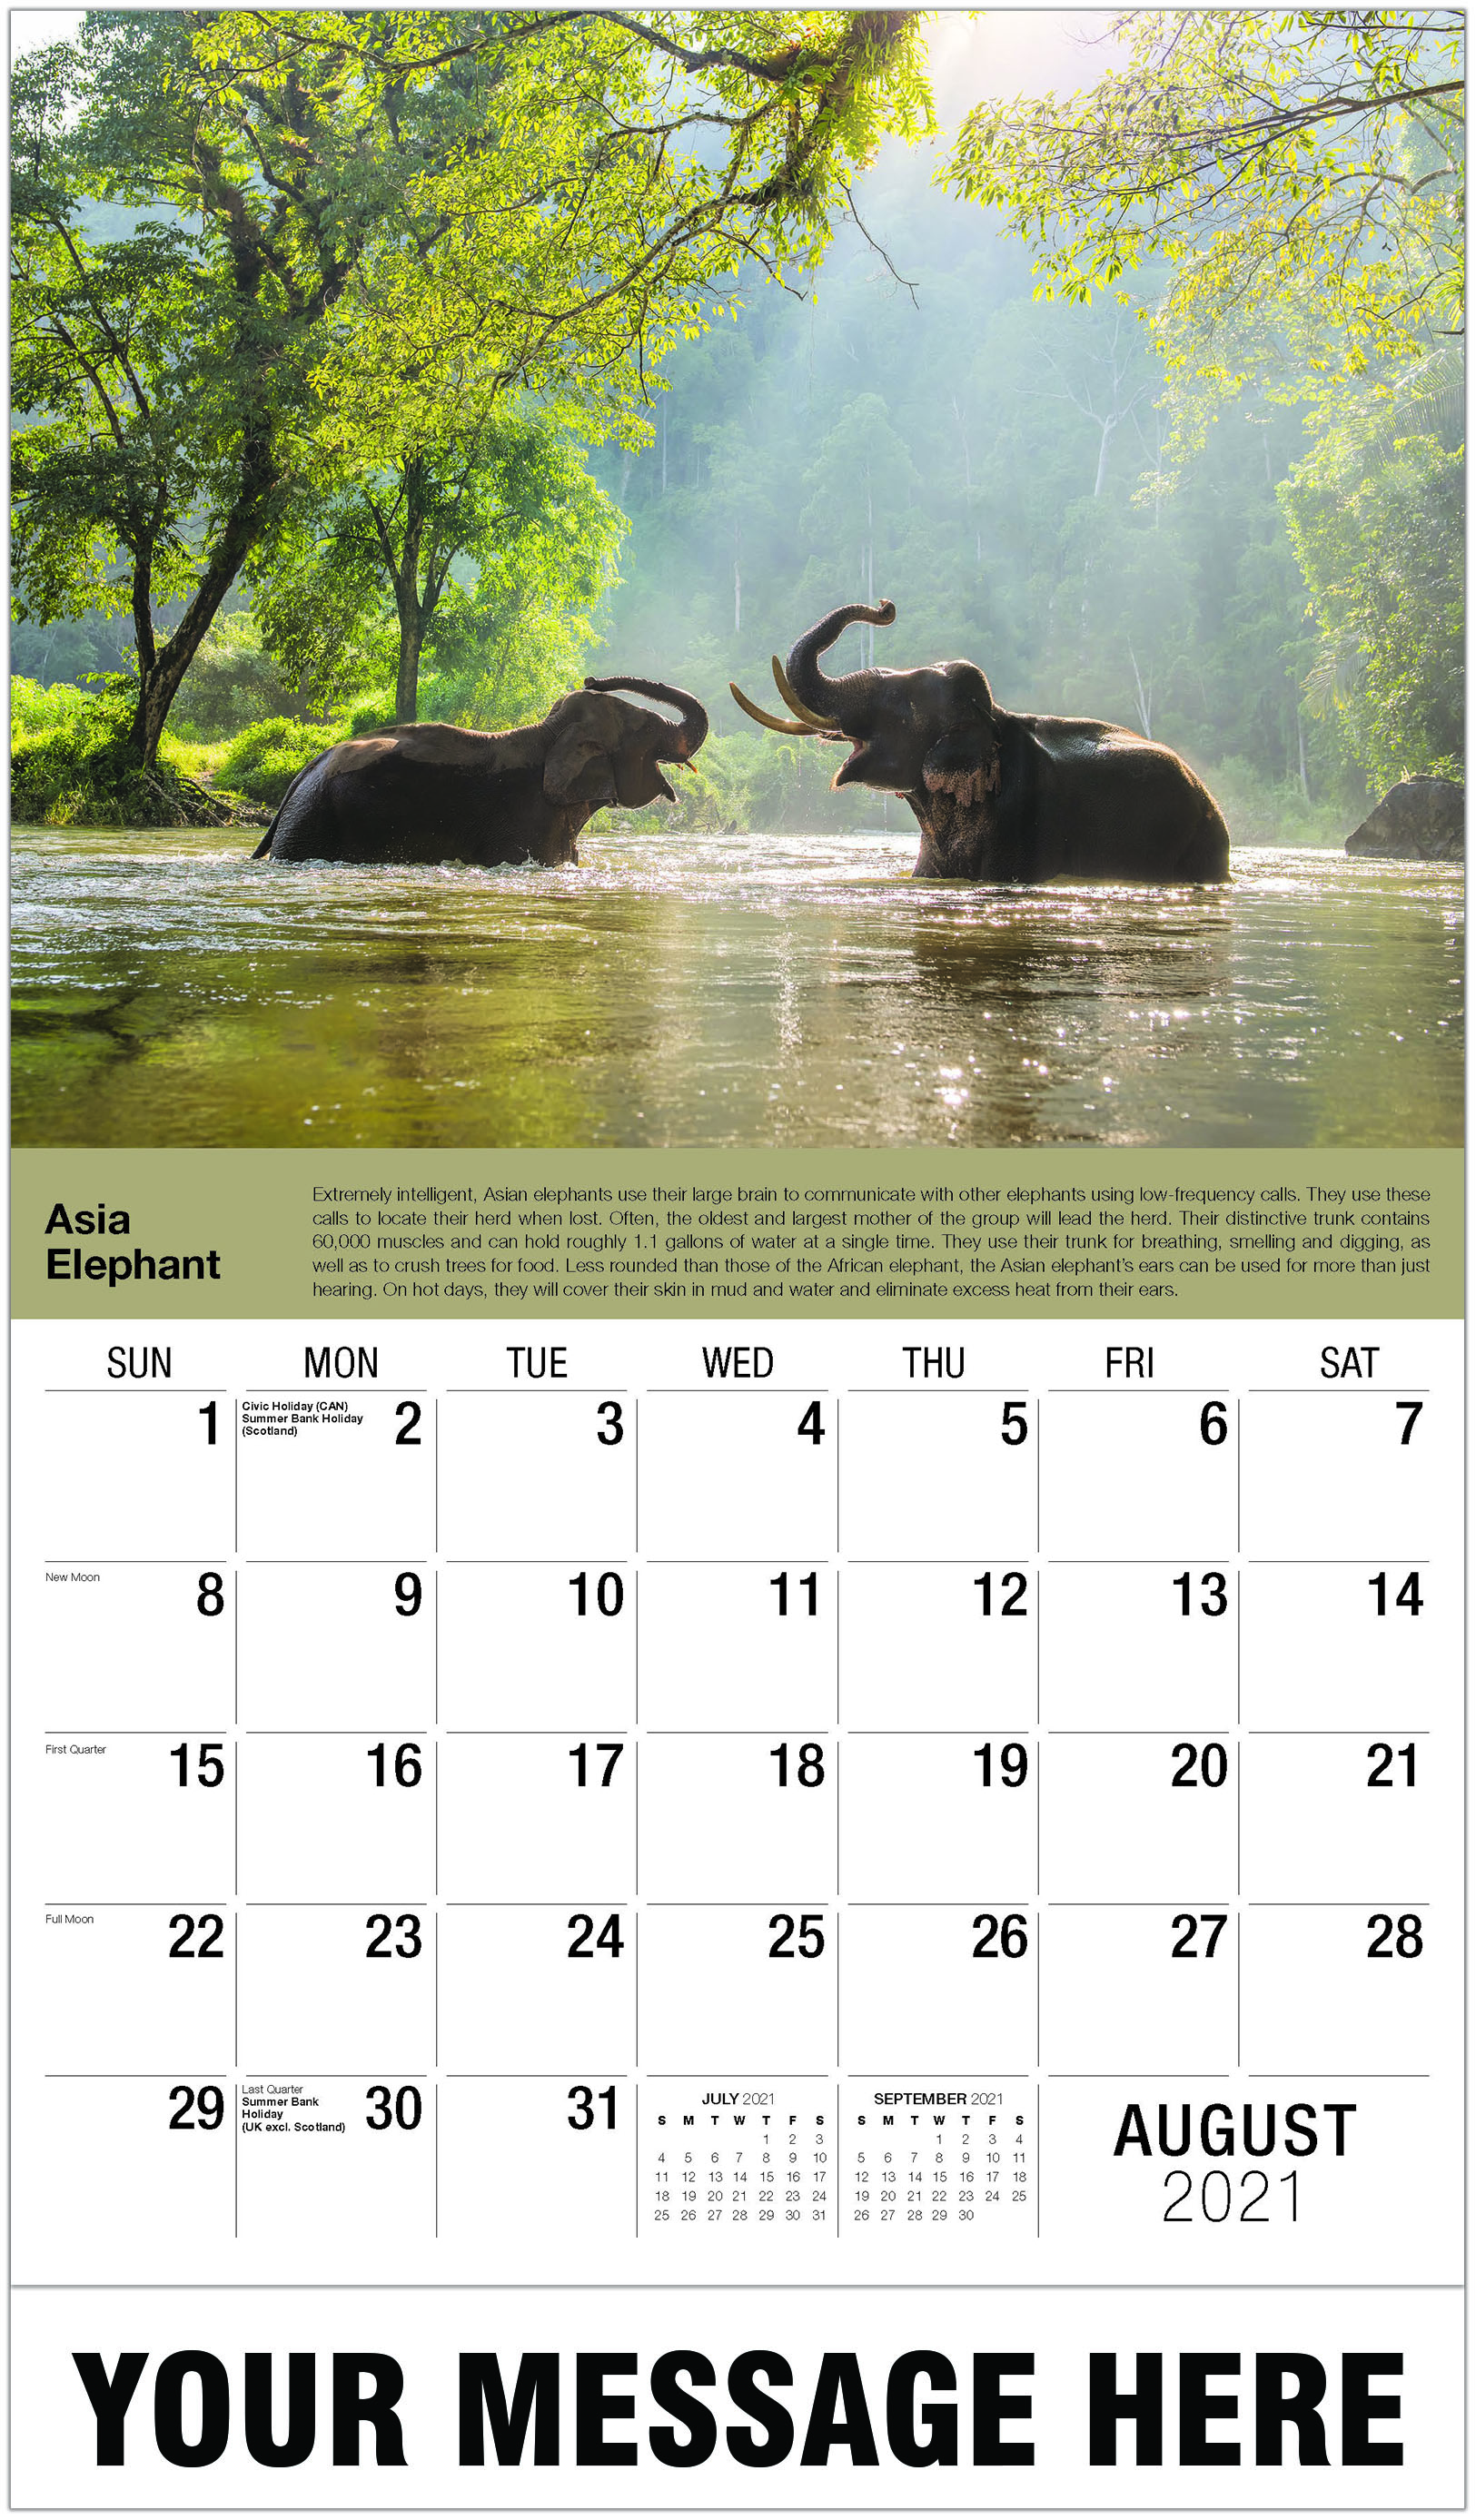 Asian Elephant - August - International Wildlife 2021 Promotional Calendar